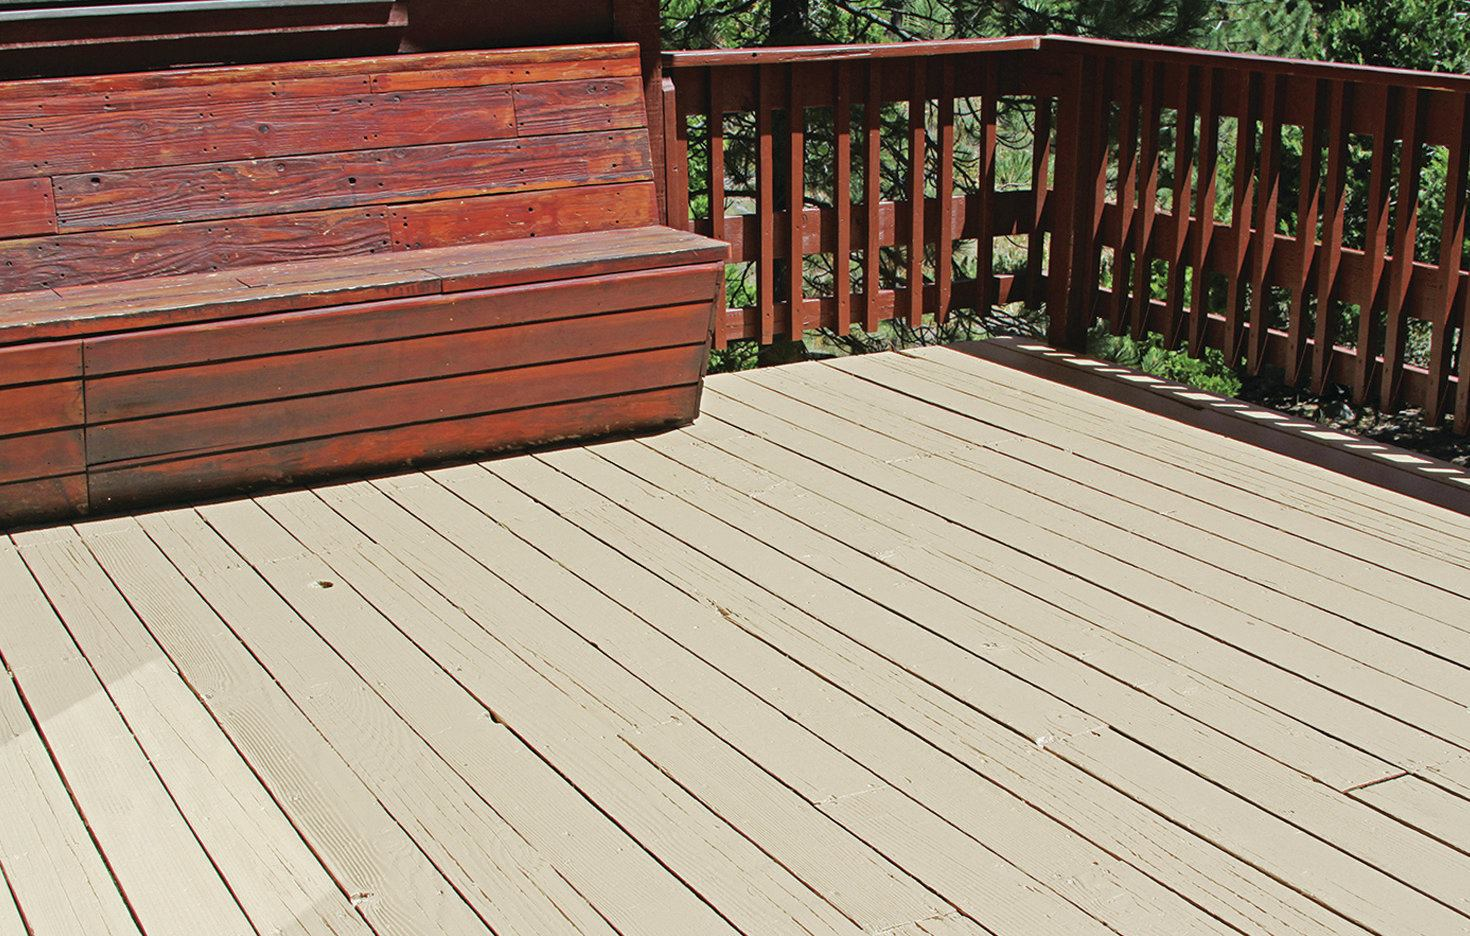 Behr Deck Paints | Behr Deck Over | Behr Deck Over Colors